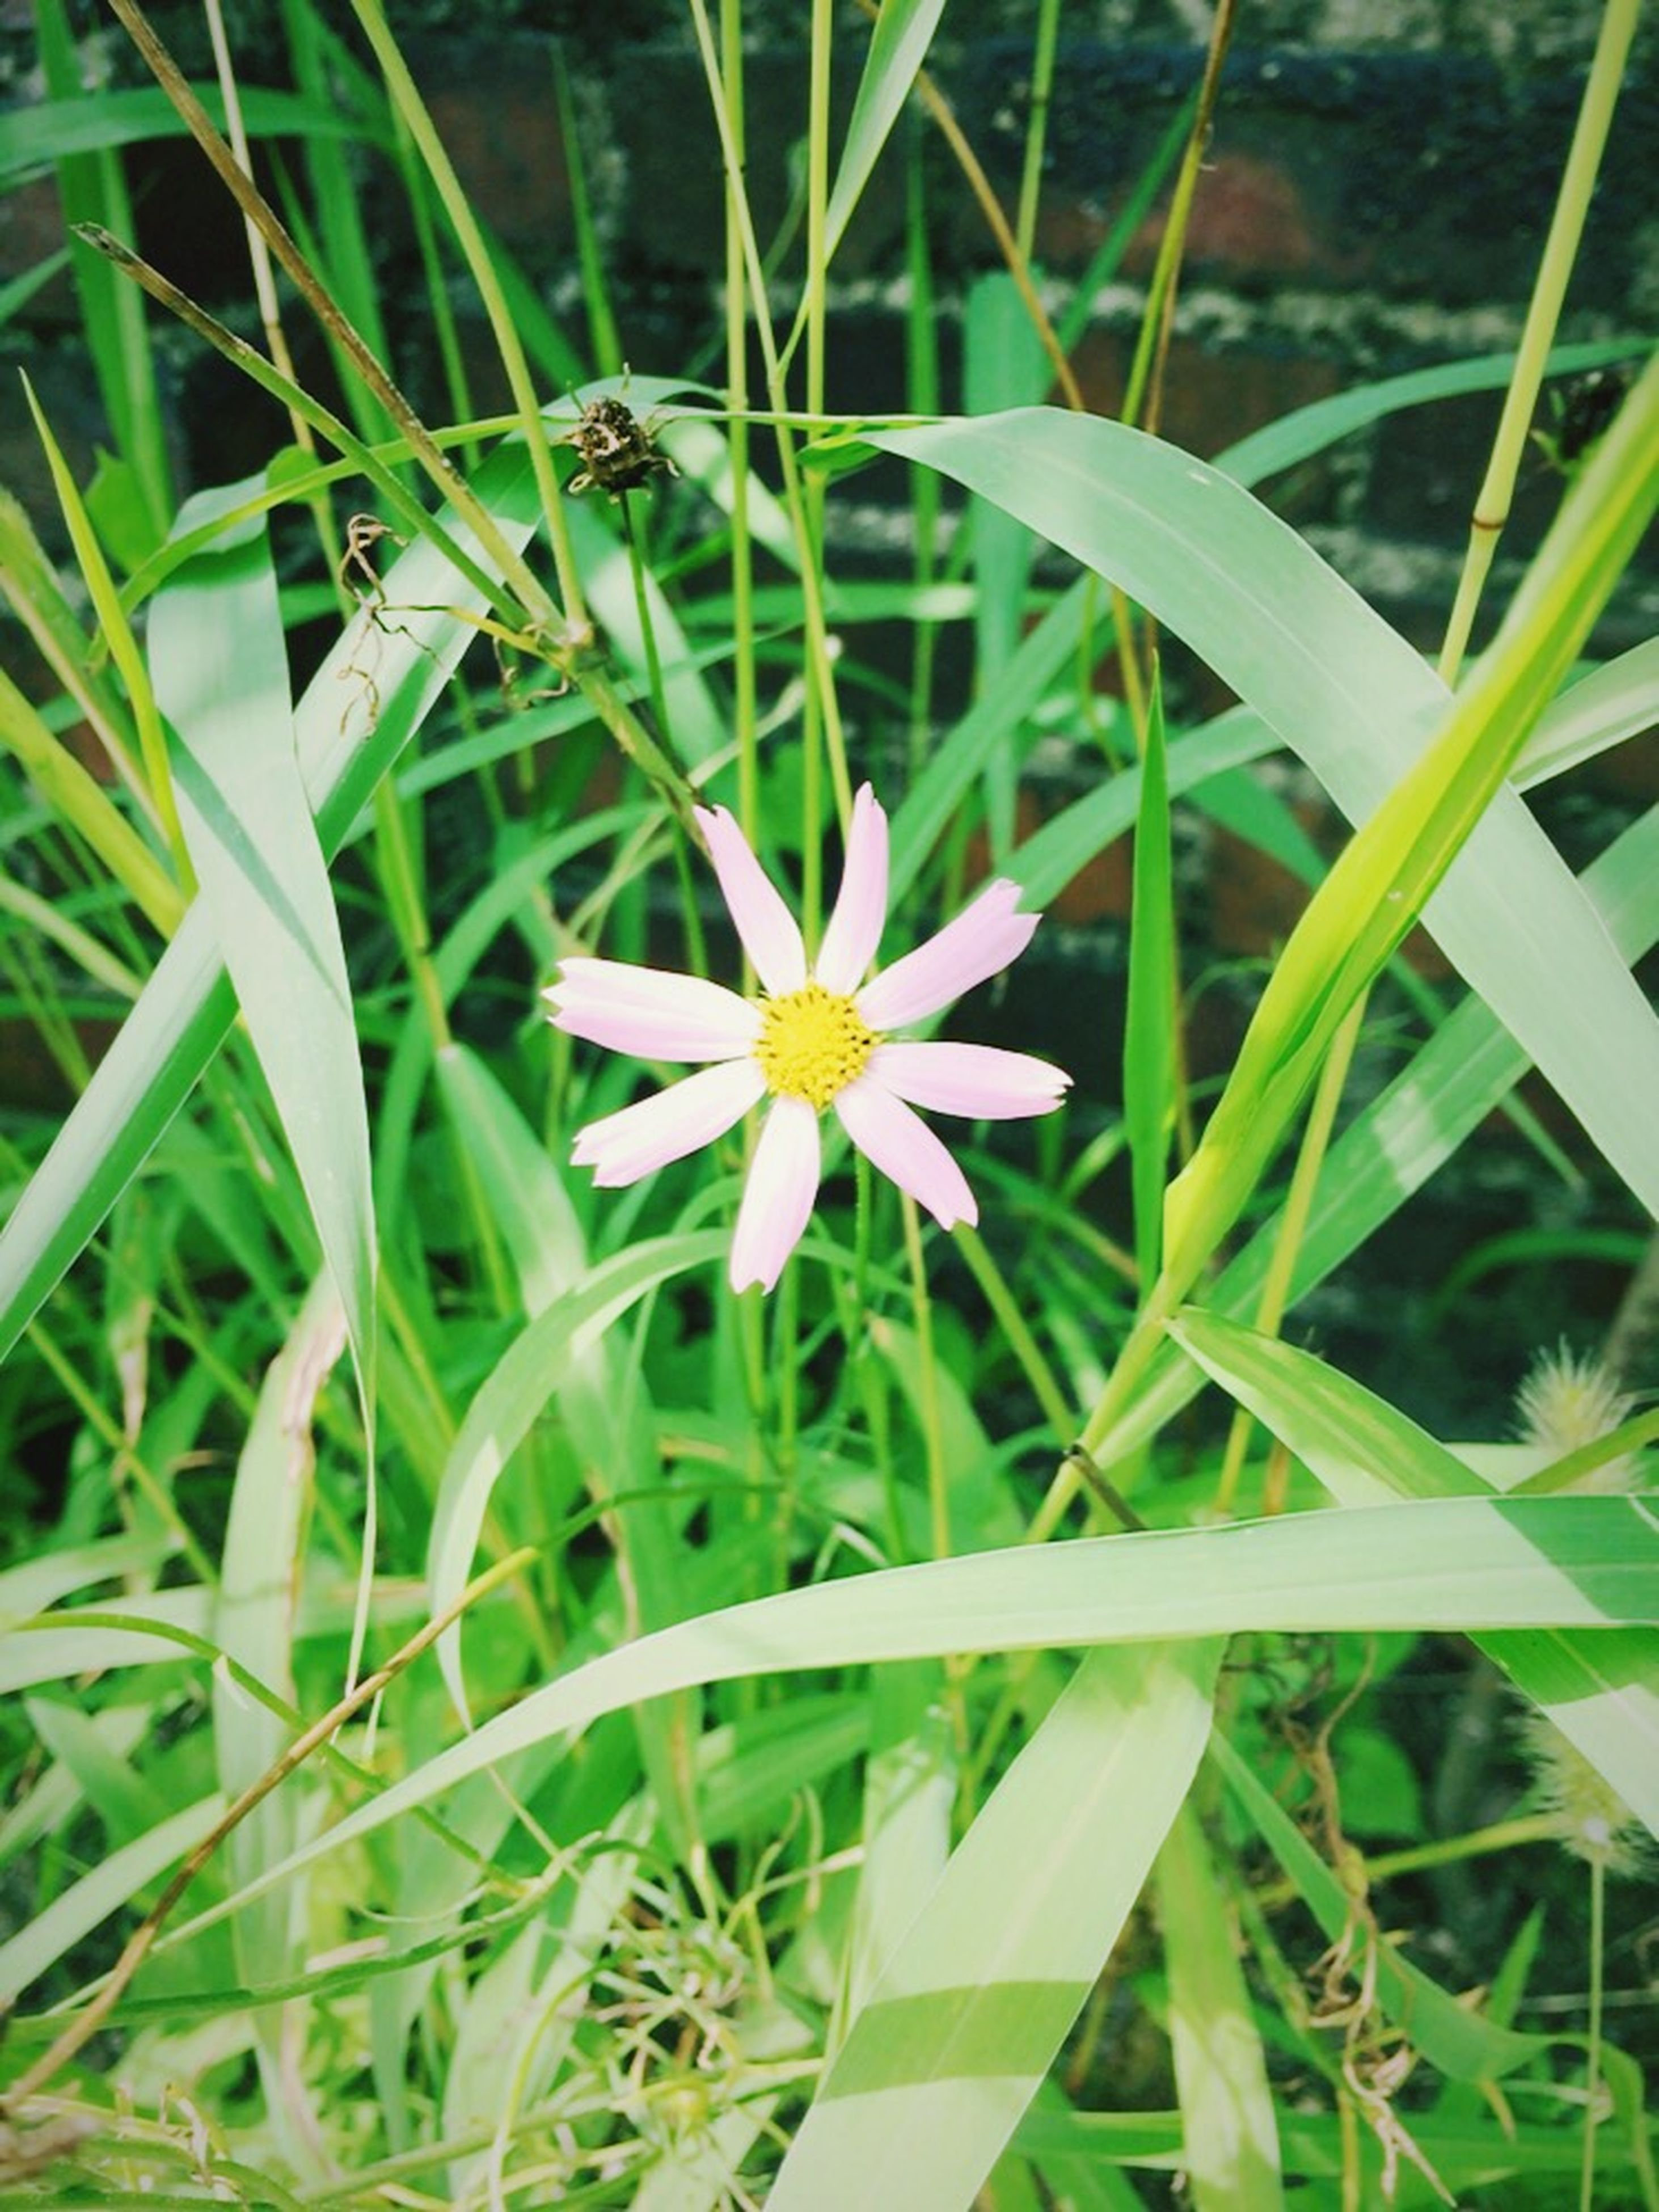 flower, freshness, growth, petal, fragility, flower head, plant, beauty in nature, blooming, green color, nature, leaf, field, high angle view, grass, white color, close-up, in bloom, day, focus on foreground